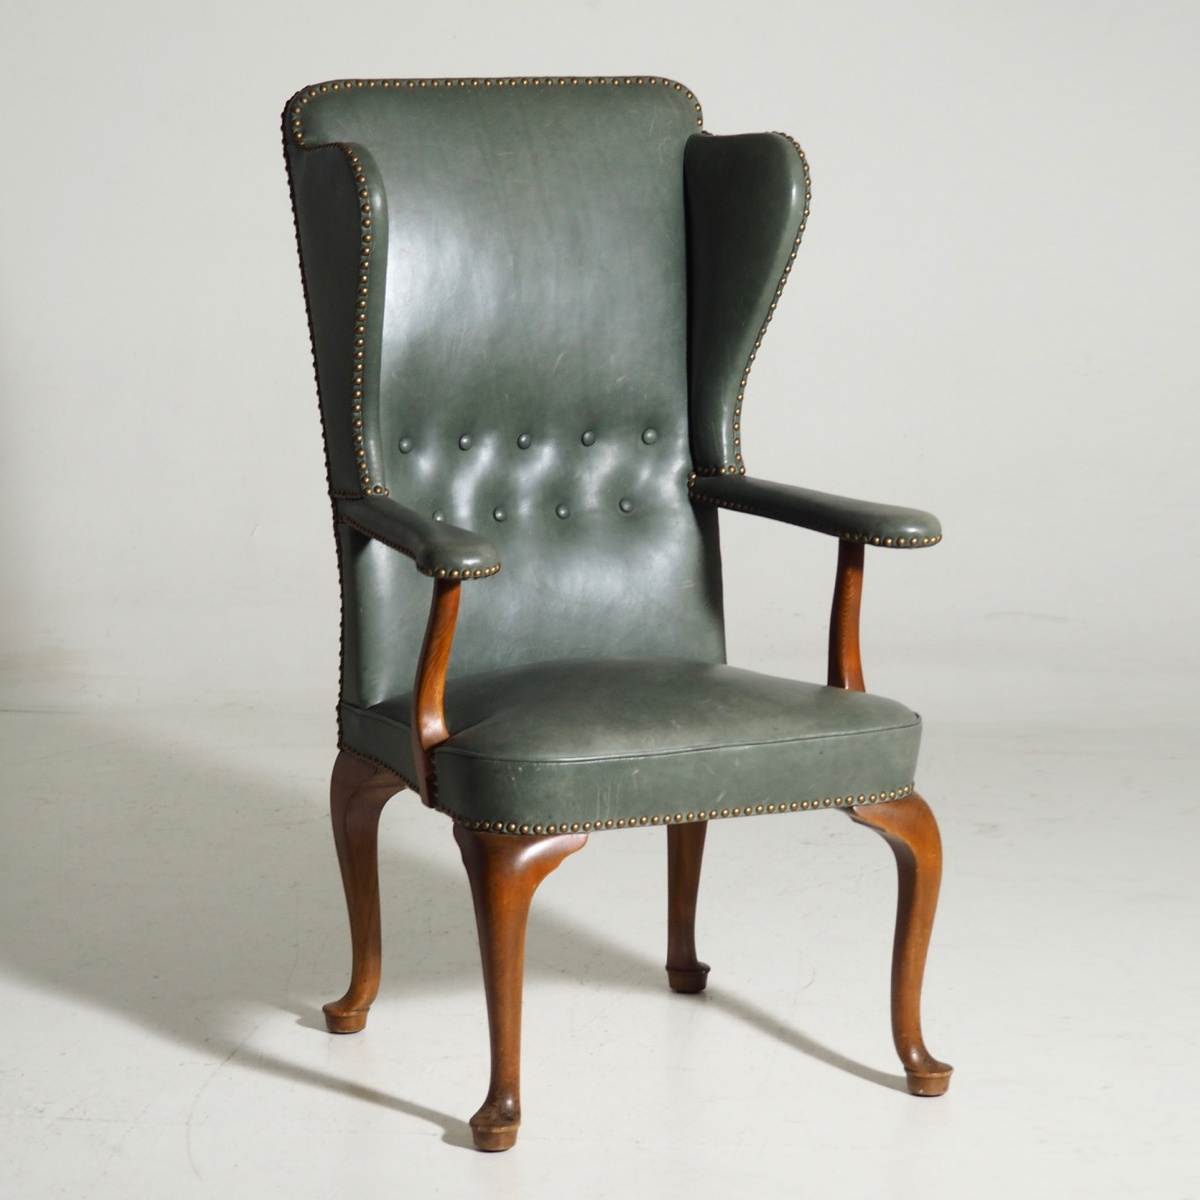 13177 2a Rare Wingback Chair Attributed To Frits Henningsen Upholstered With Green Leather And Brass Nails Selected Design Antiques